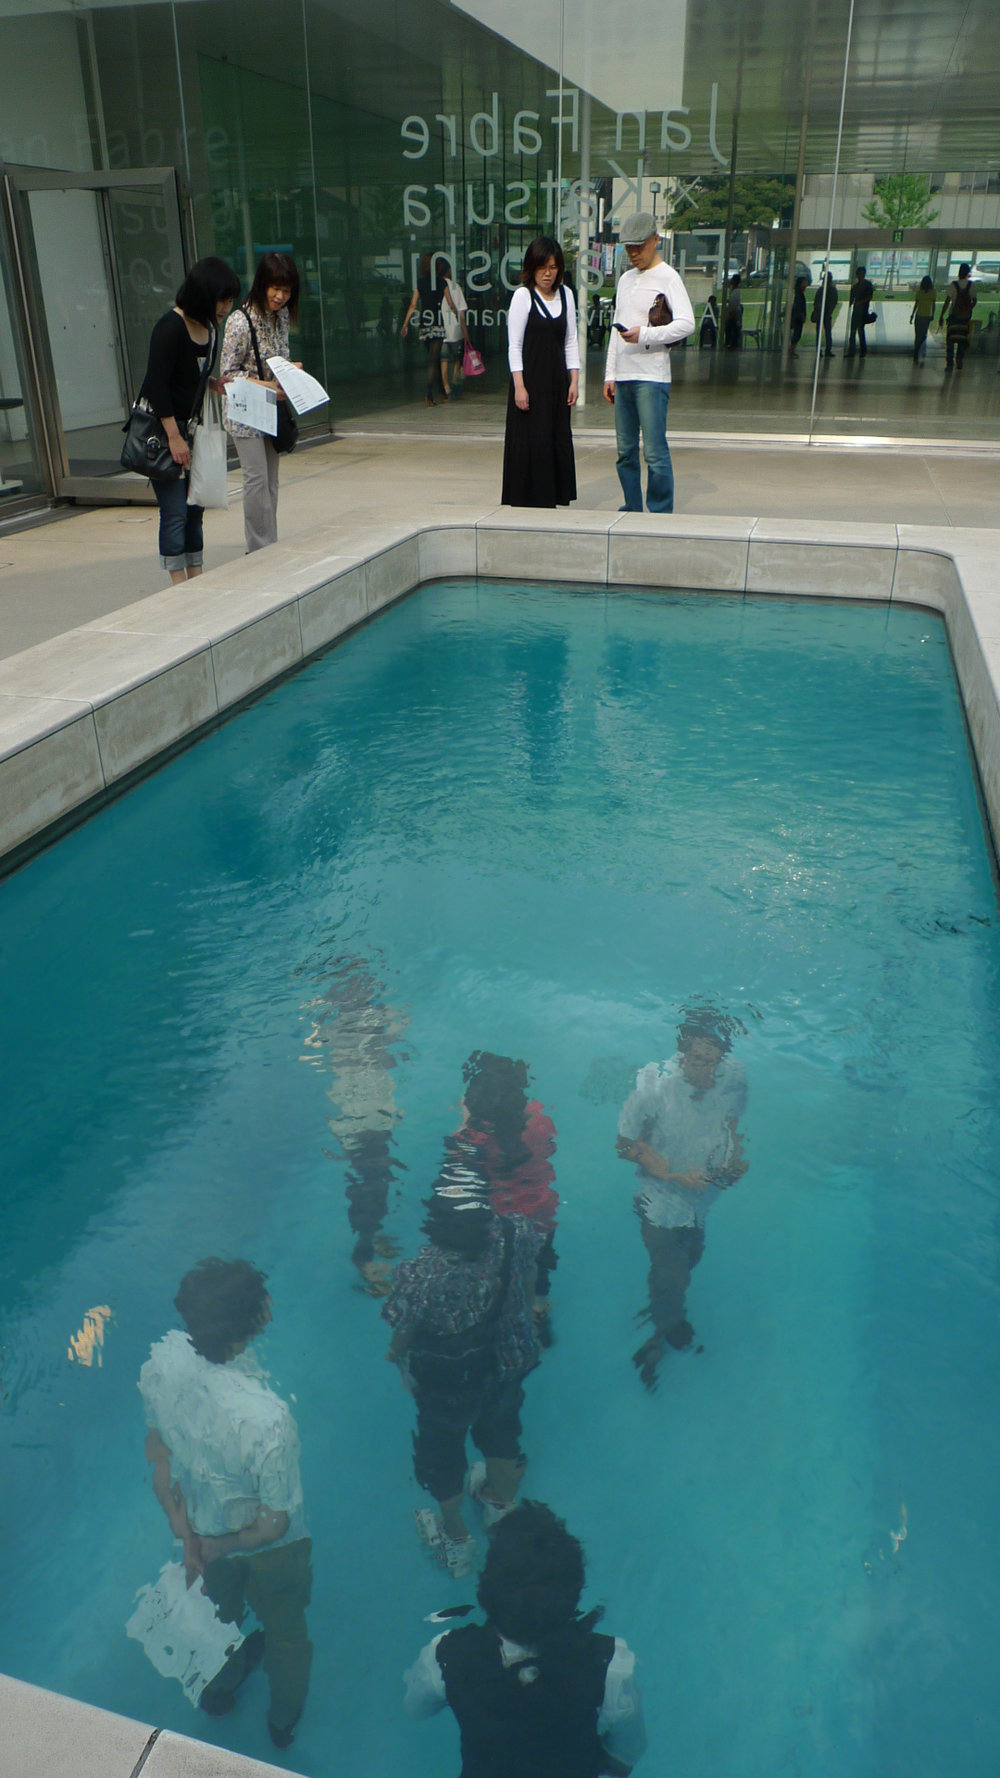 Fake Swimming Pool  by Leandro Erlich, 2004, 21st Century Art Museum, Japan